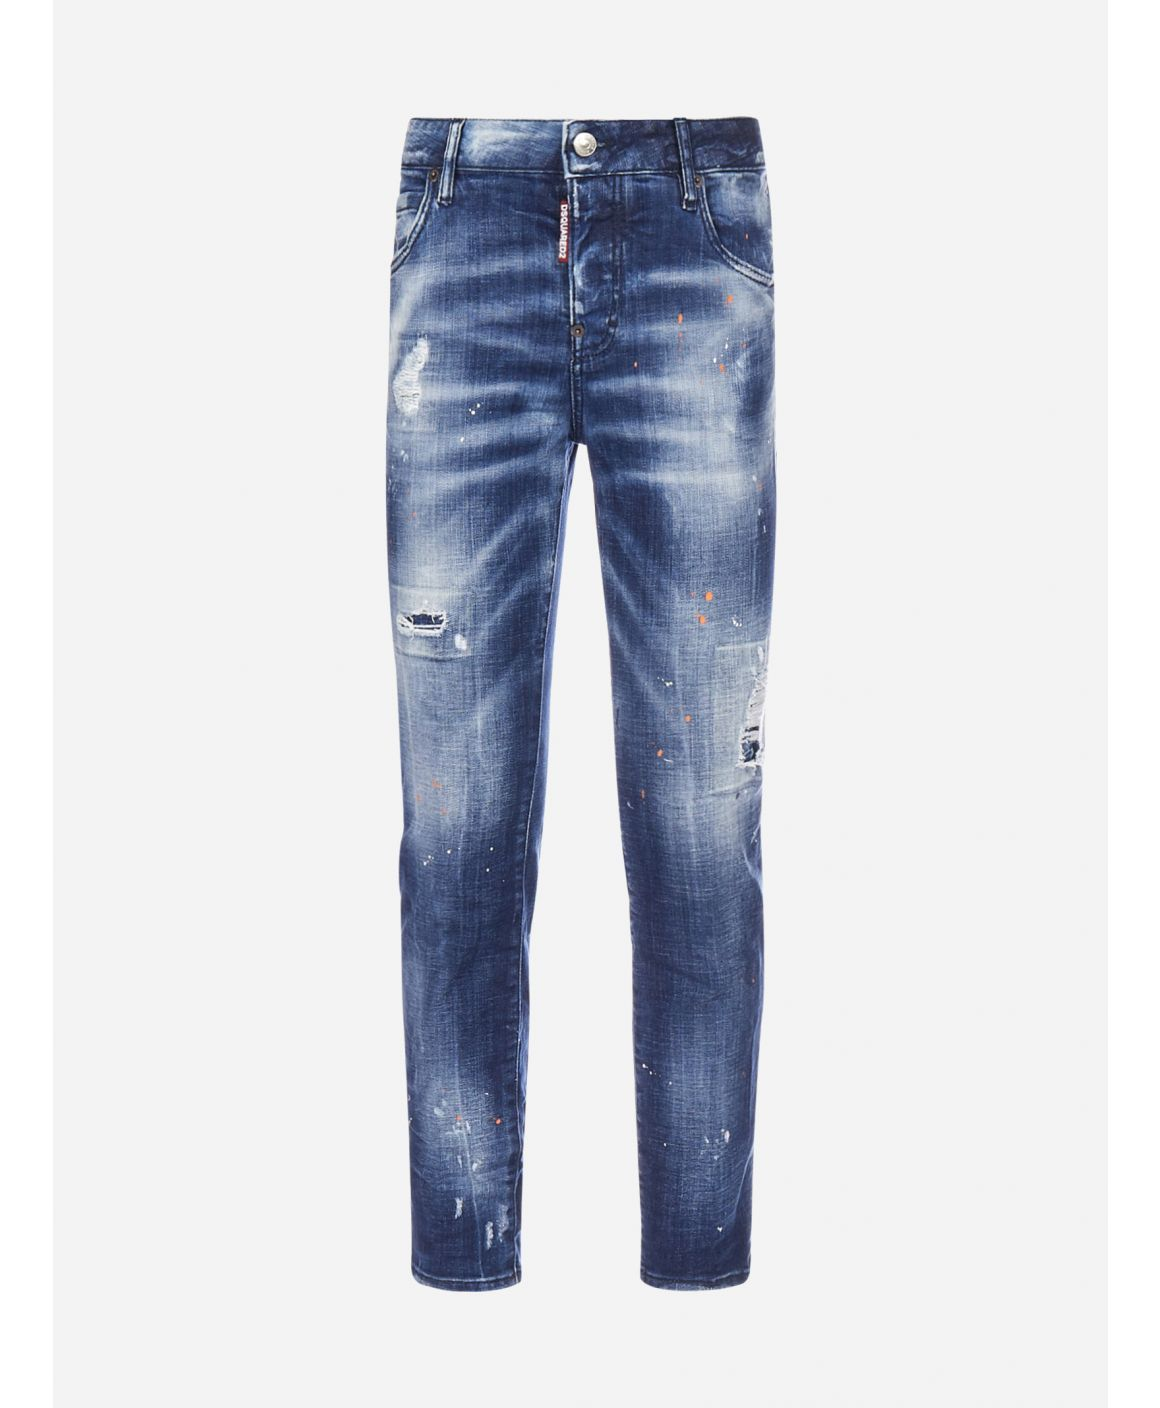 Wash Cool Girl stretch denim jeans